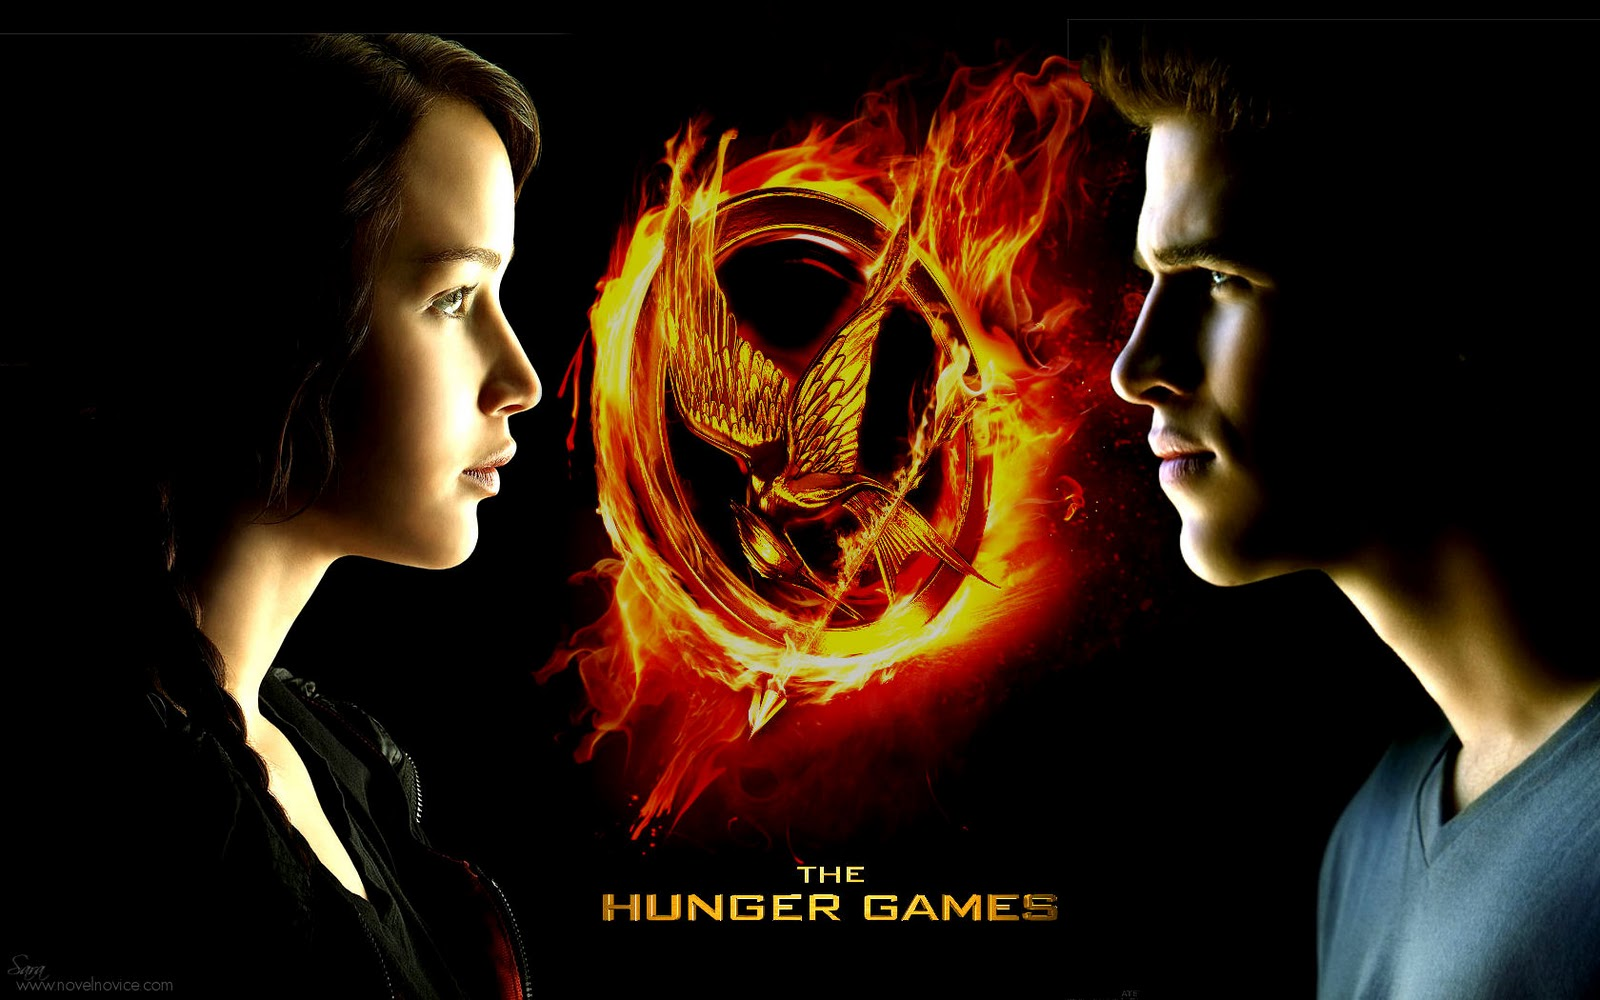 http://4.bp.blogspot.com/-OLizIXo_J44/TxBNWeBnH7I/AAAAAAAAAW0/BfhUlMBnzKU/s1600/hunger-games-movie-wp_katniss-and-gale.jpg